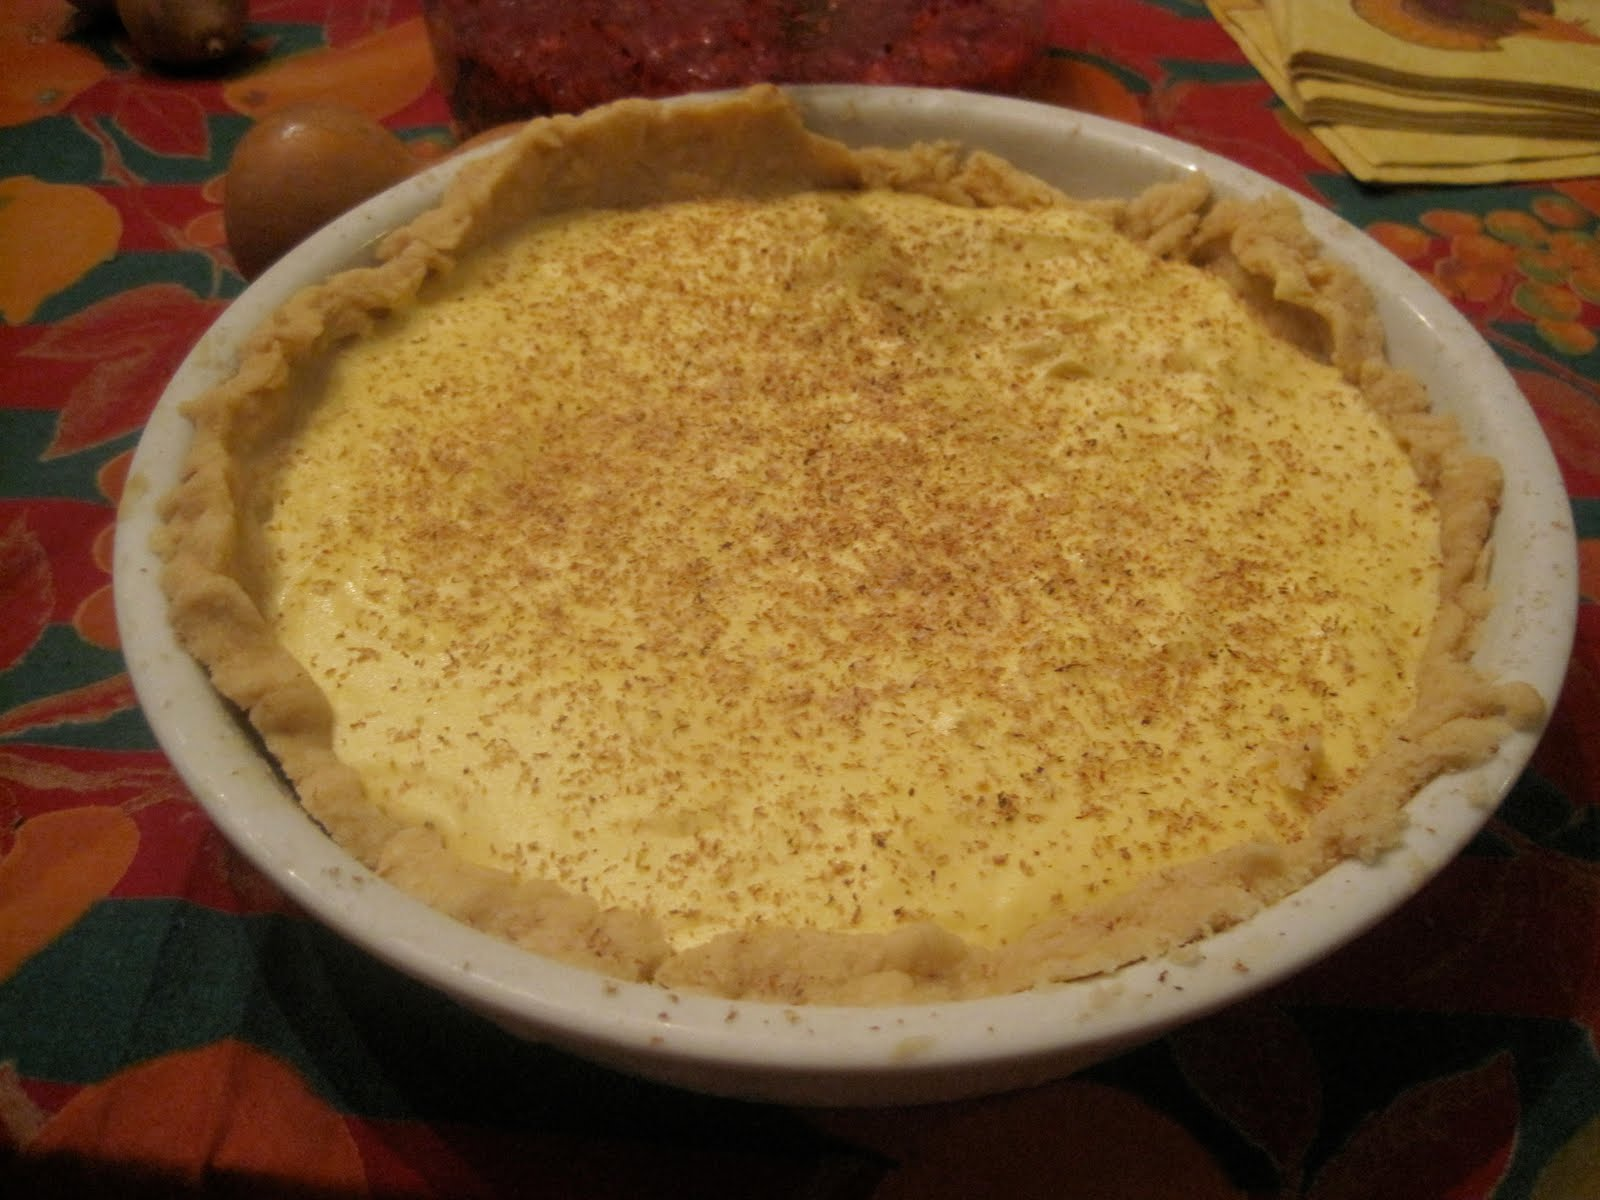 The Tipsy Baker: Eggnog pie